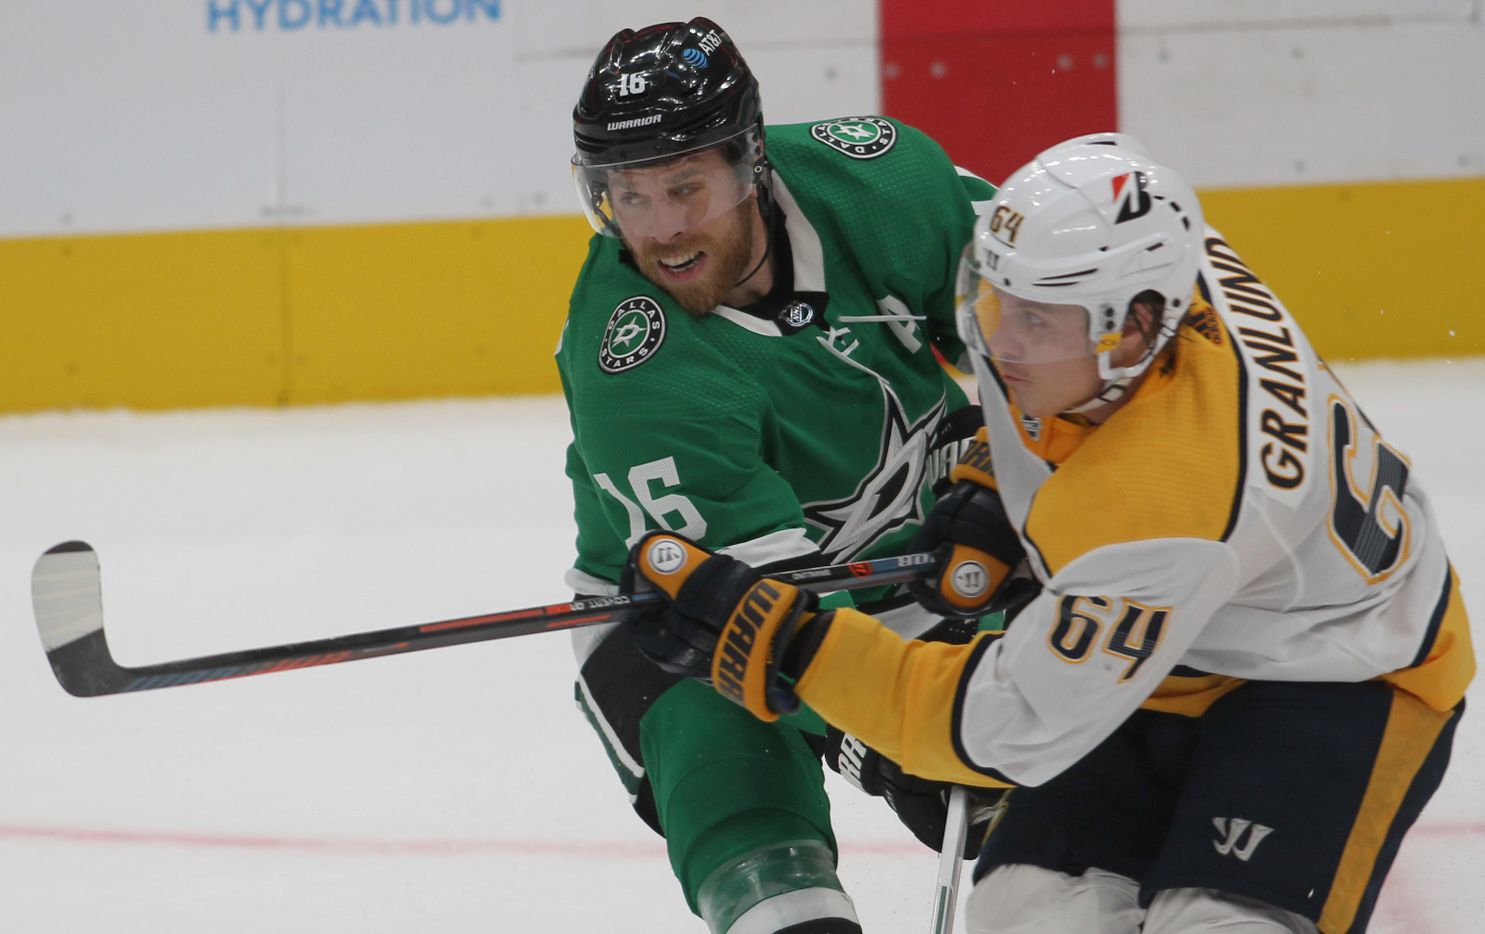 Dallas Stars' Joe Pavelski (16) tangles with Nashville Predators' Mikael Granlund (64) during the third period of play. The Stars won, 3-2. The two teams played their NHL game at the American Airlines Center in Dallas on January 24 , 2021. (Steve Hamm/ Special Contributor)